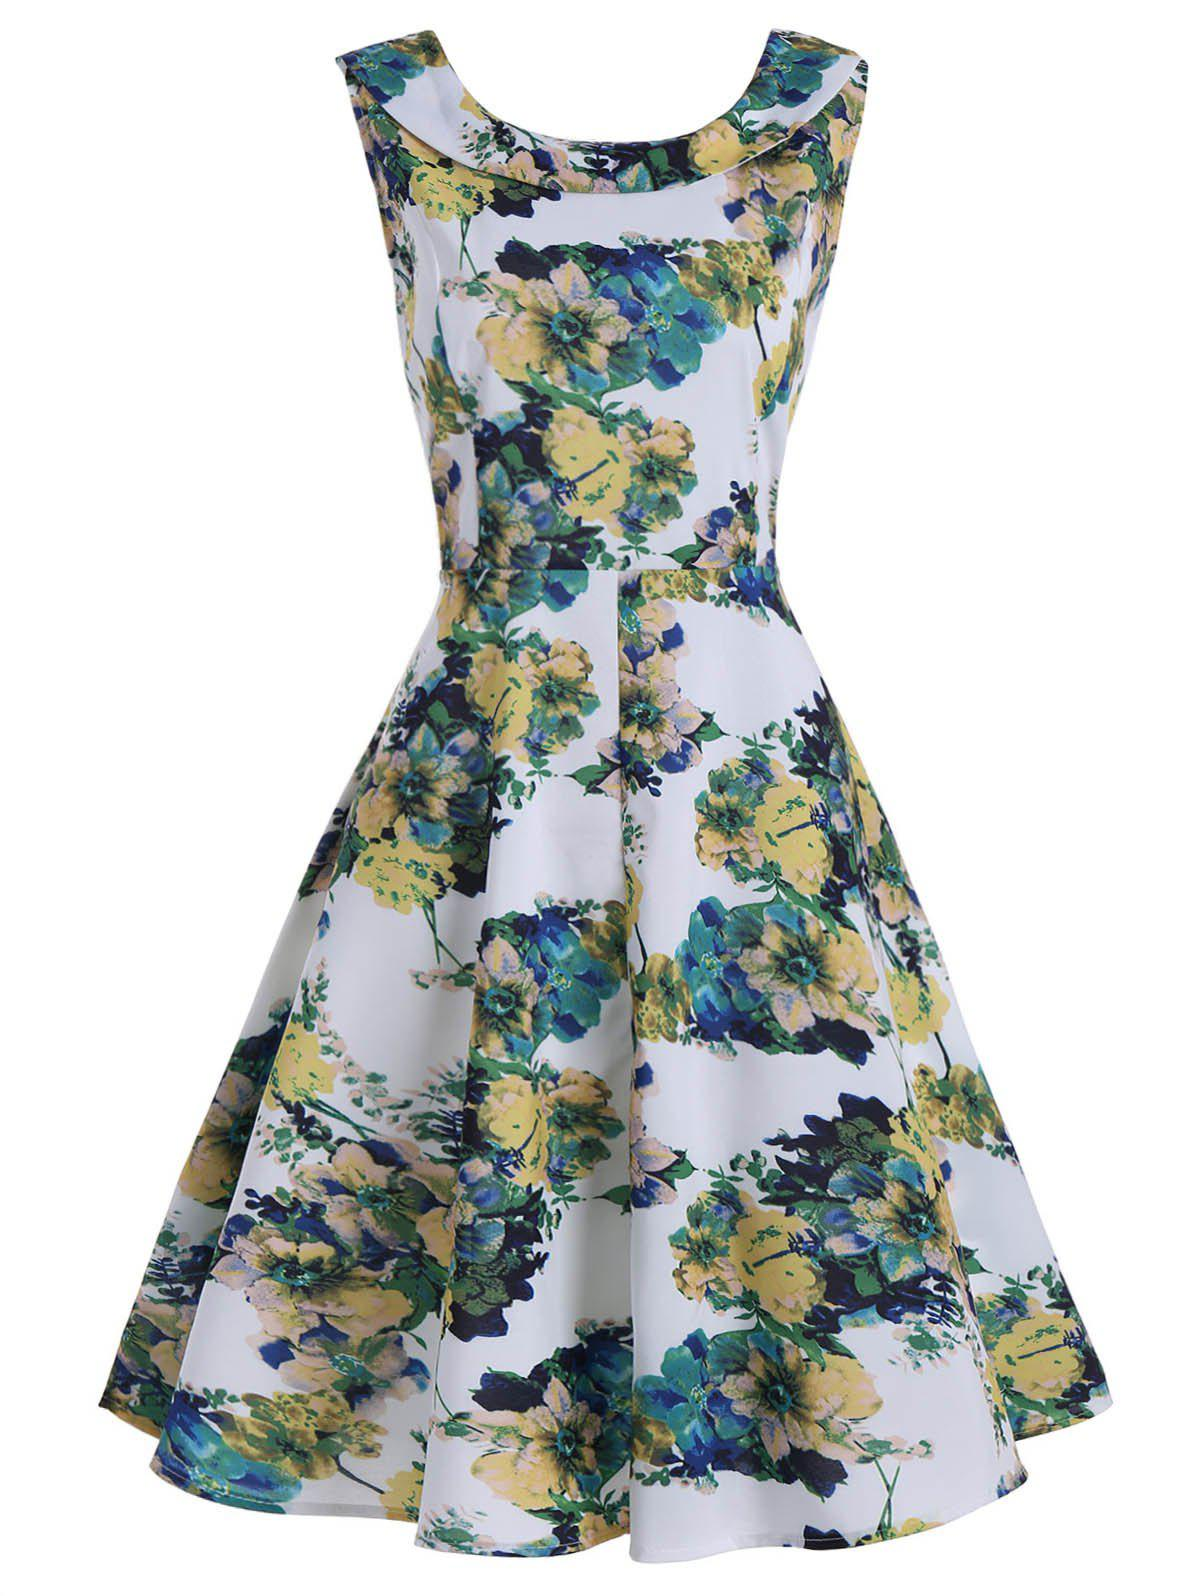 44598c3cd39a 2018 Flower Ink Painting Printed Vintage Dress In Colormix 2xl ...